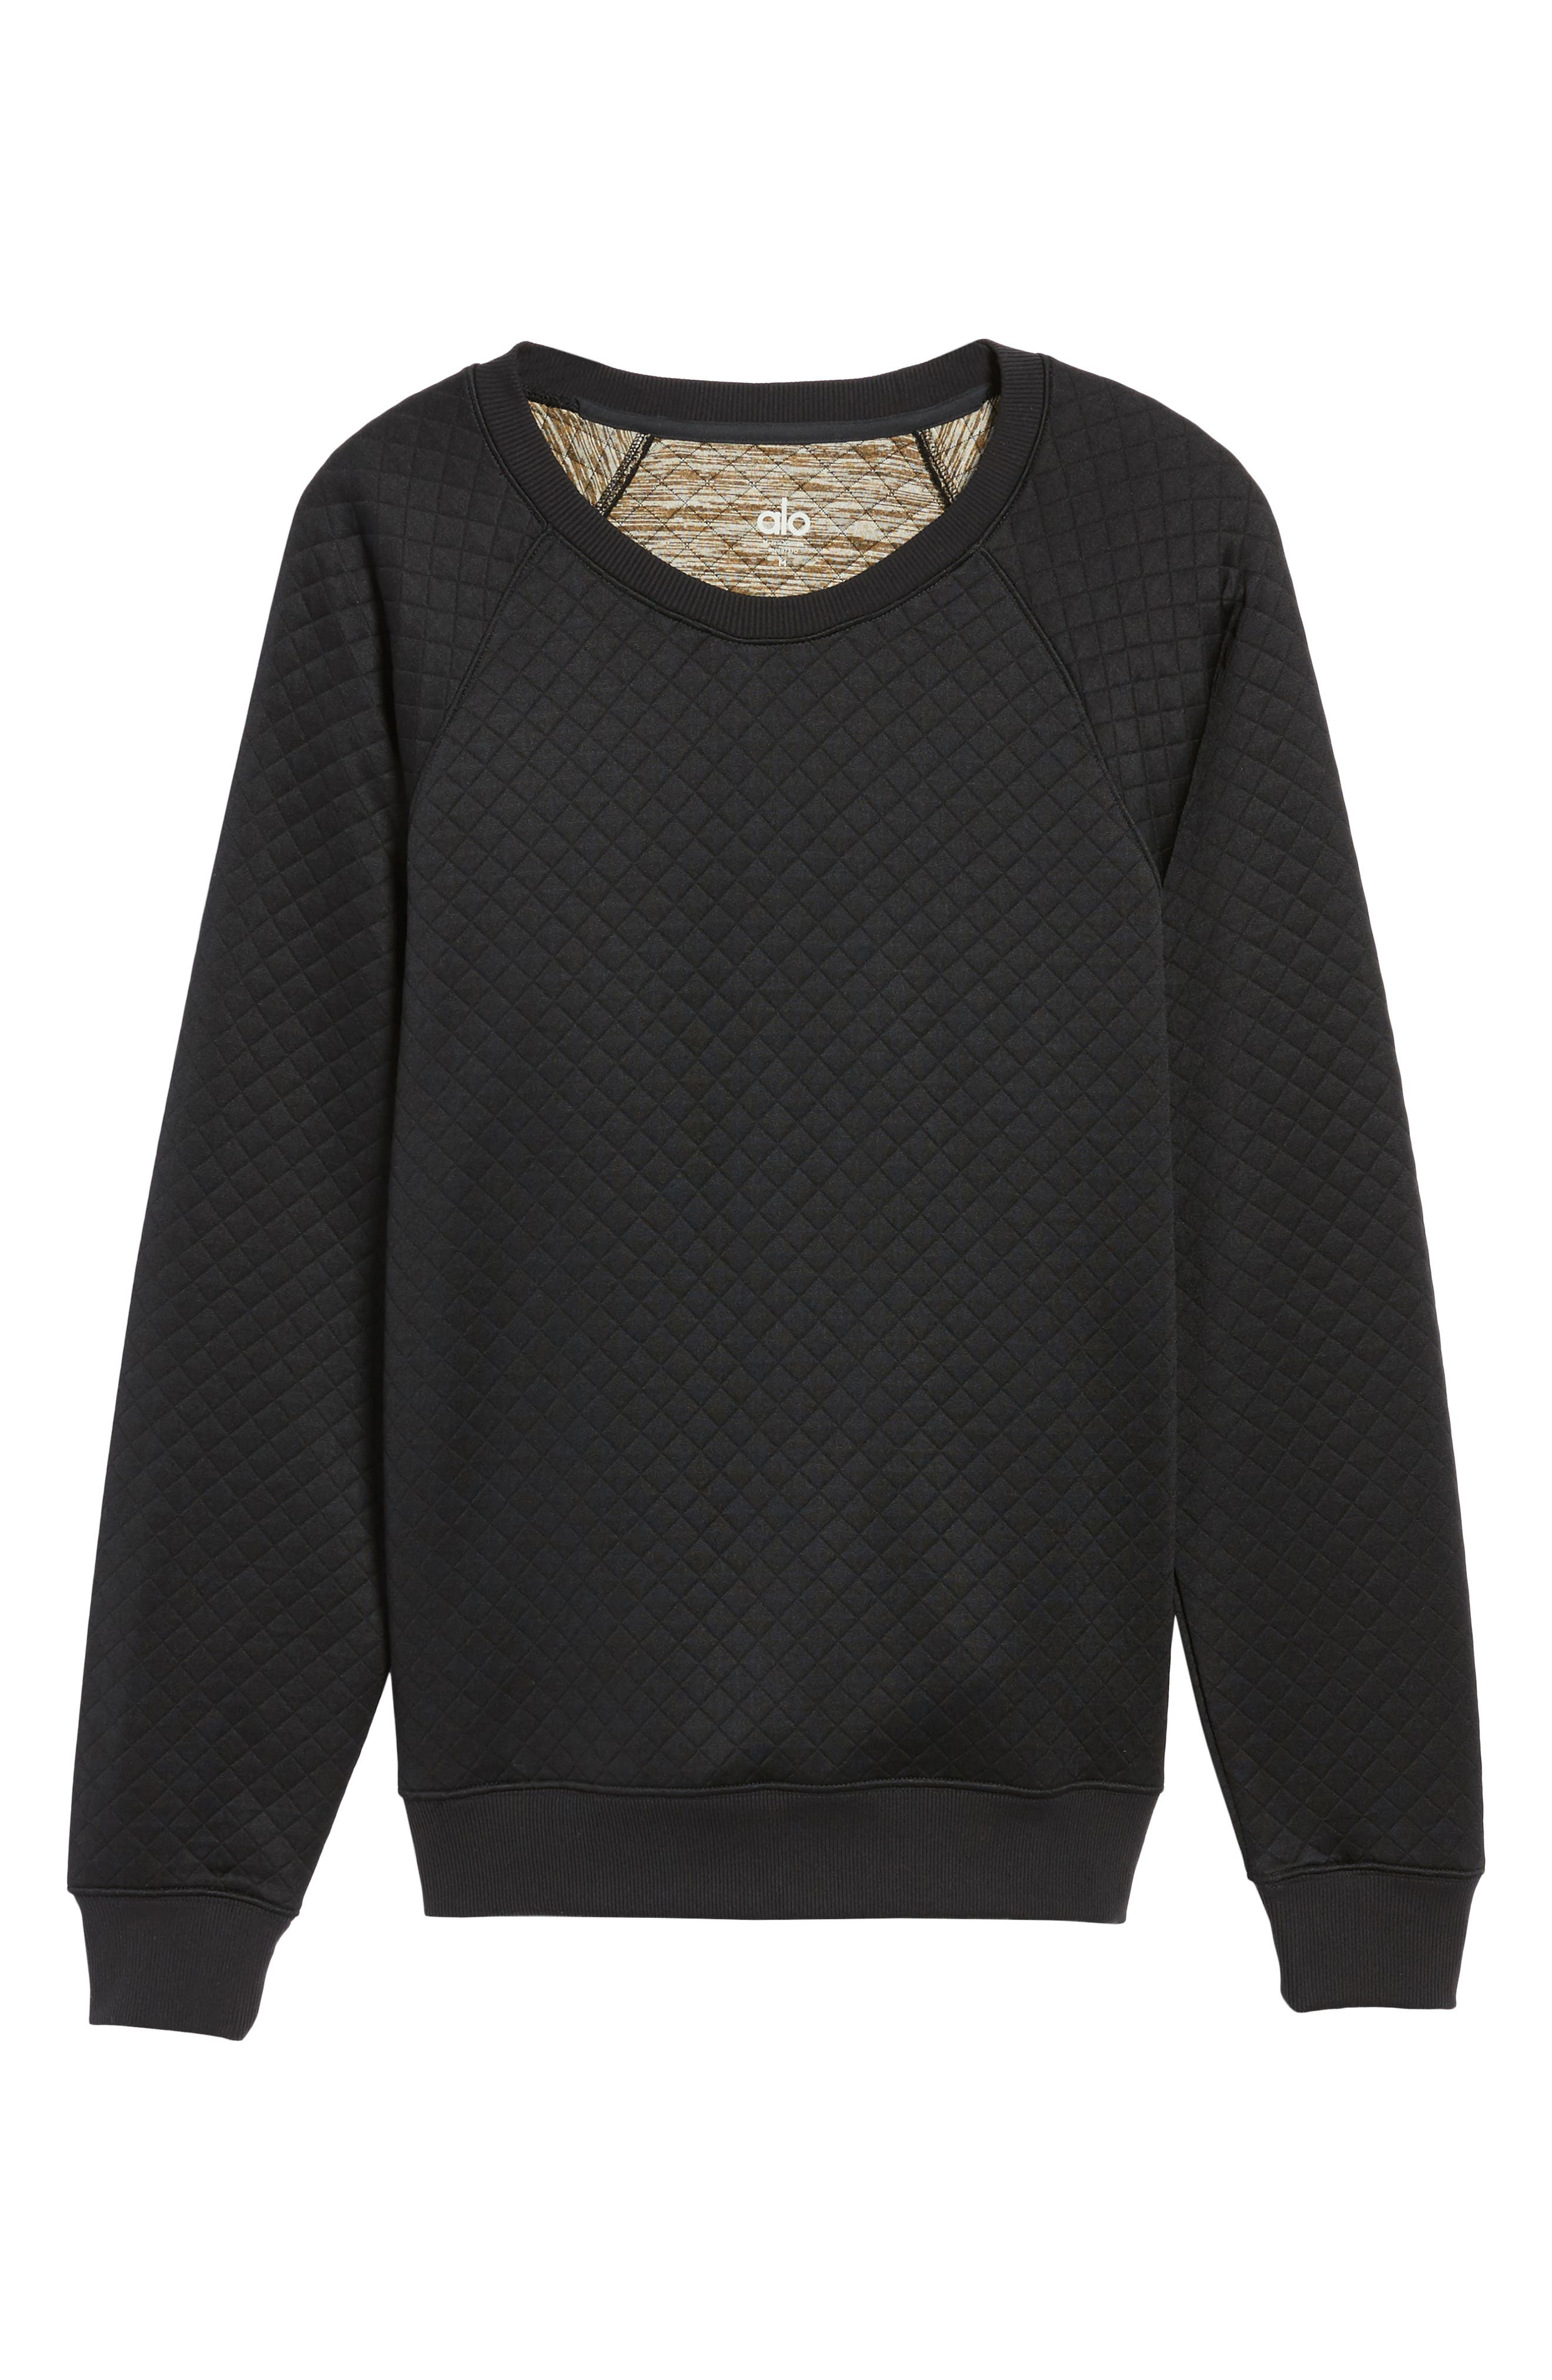 Yama Relaxed Slim Fit Quilted Sweatshirt,                             Alternate thumbnail 6, color,                             Black